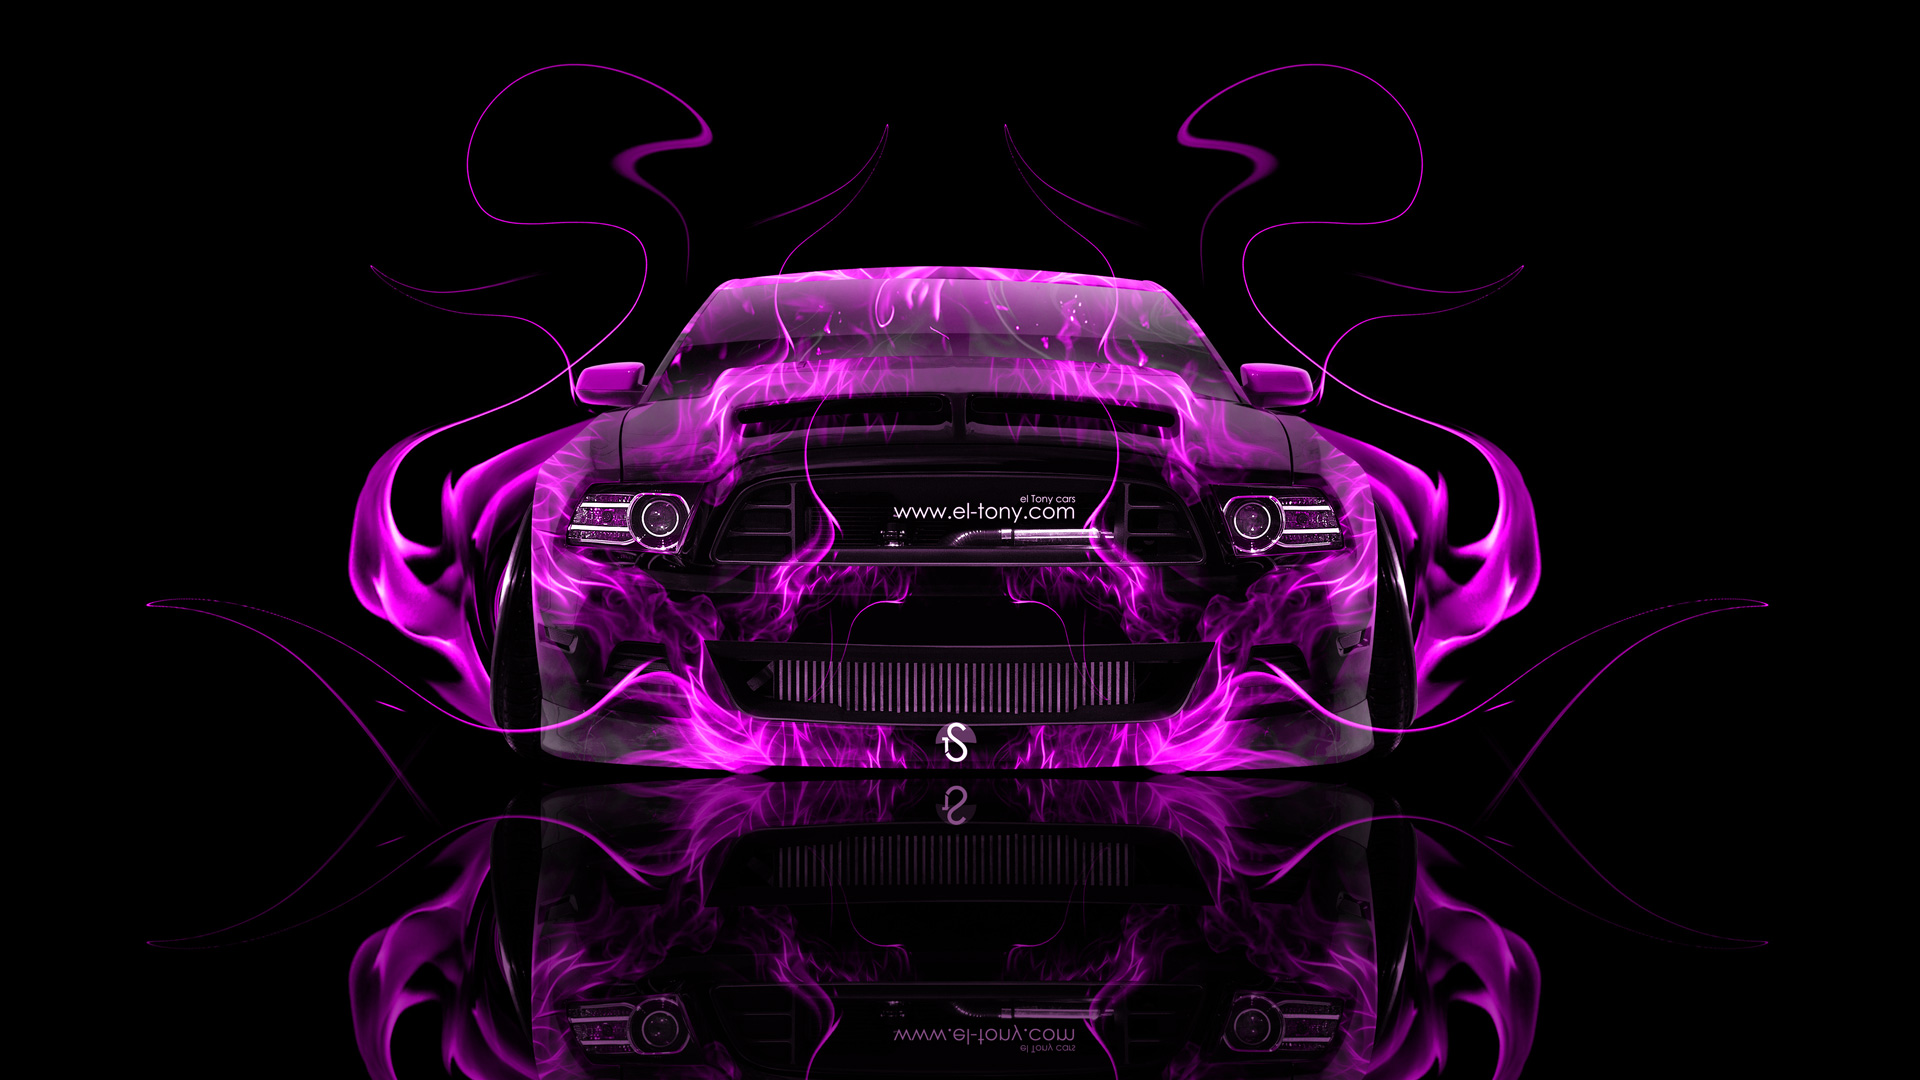 Dodge Muscle Car Wallpapers Ford Mustang Gt Muscle Fire Abstract Car 2014 El Tony